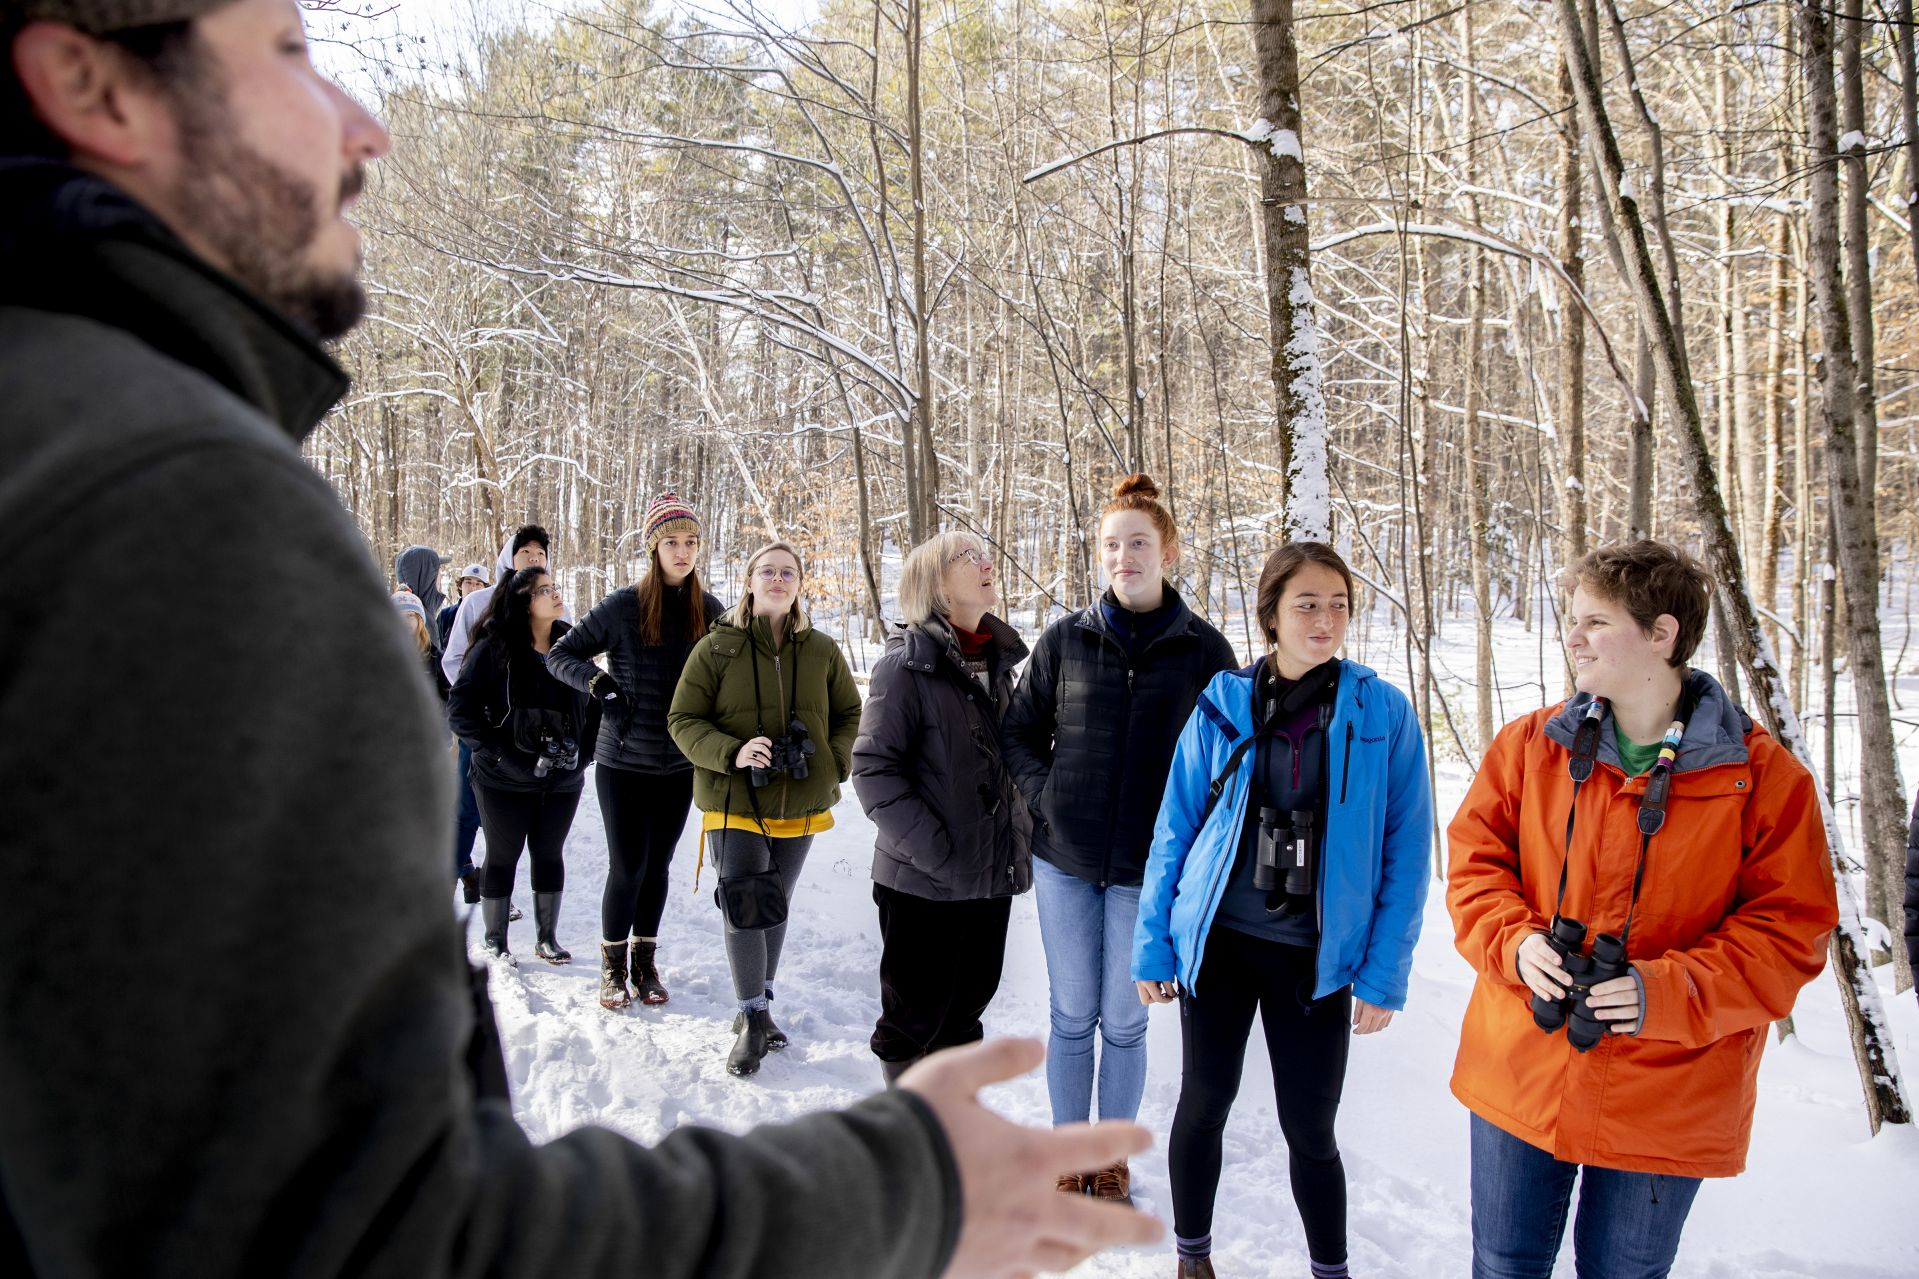 Nick Lund of Maine Audubon demonstrates how birds communicate with each other during a walk in the woods with Costlow and her students in the Thorncrag Bird Sanctuary. (Phyllis Graber Jensen/Bates College)